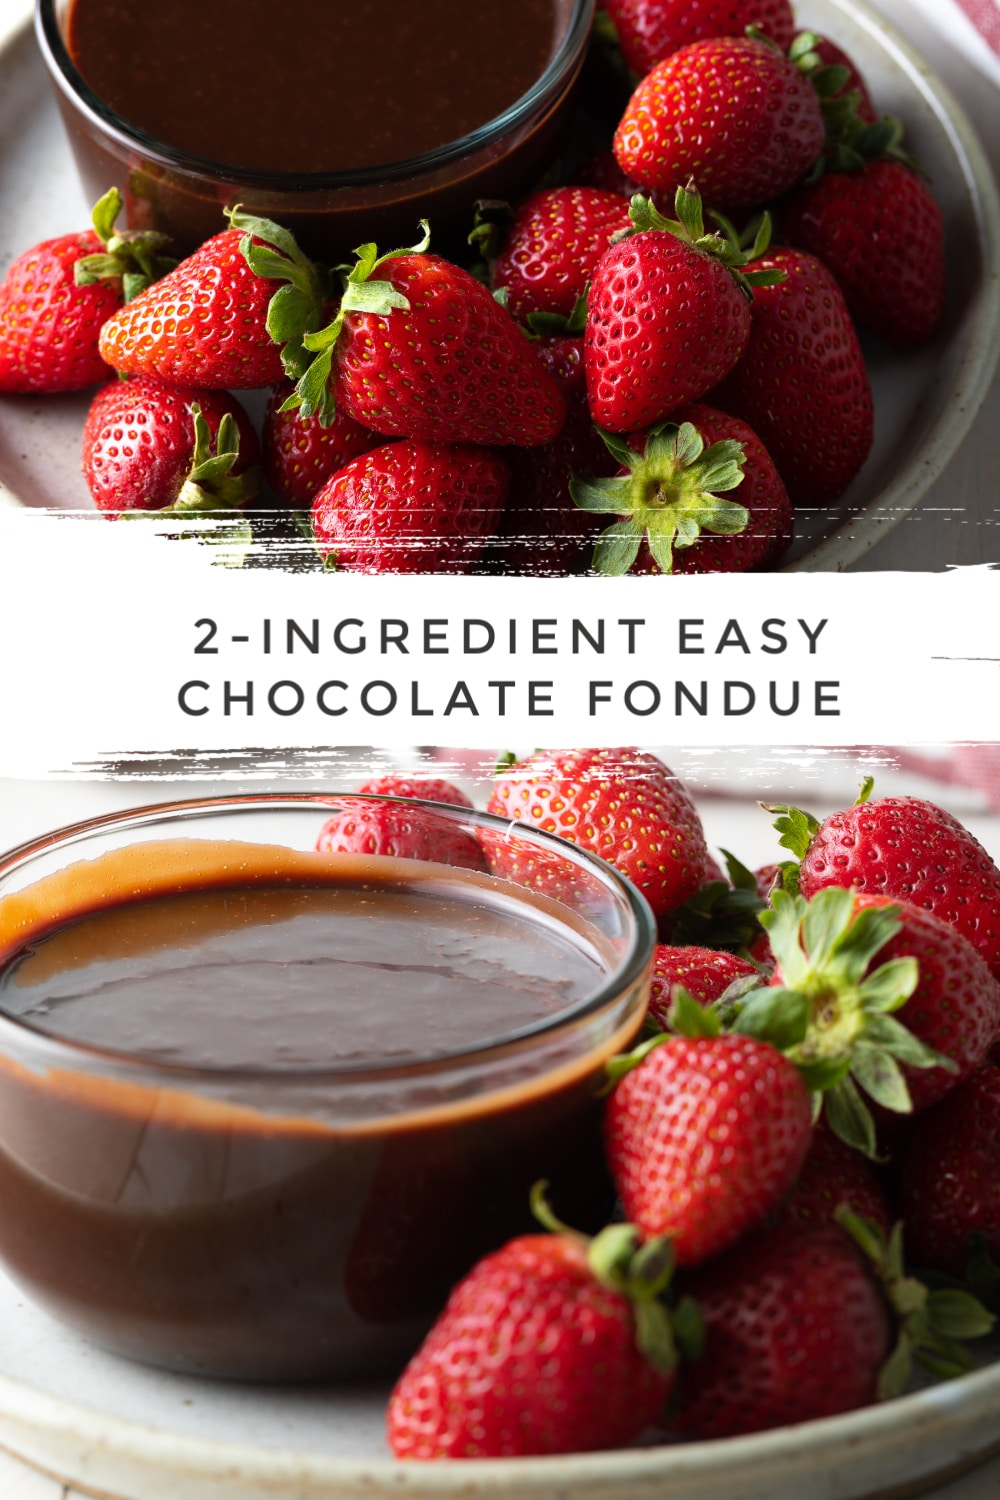 Easy Chocolate Fondue Recipe #ASpicyPerspective #chocolate #fondue #nutella #valentinesday #christmas #holiday #newyears